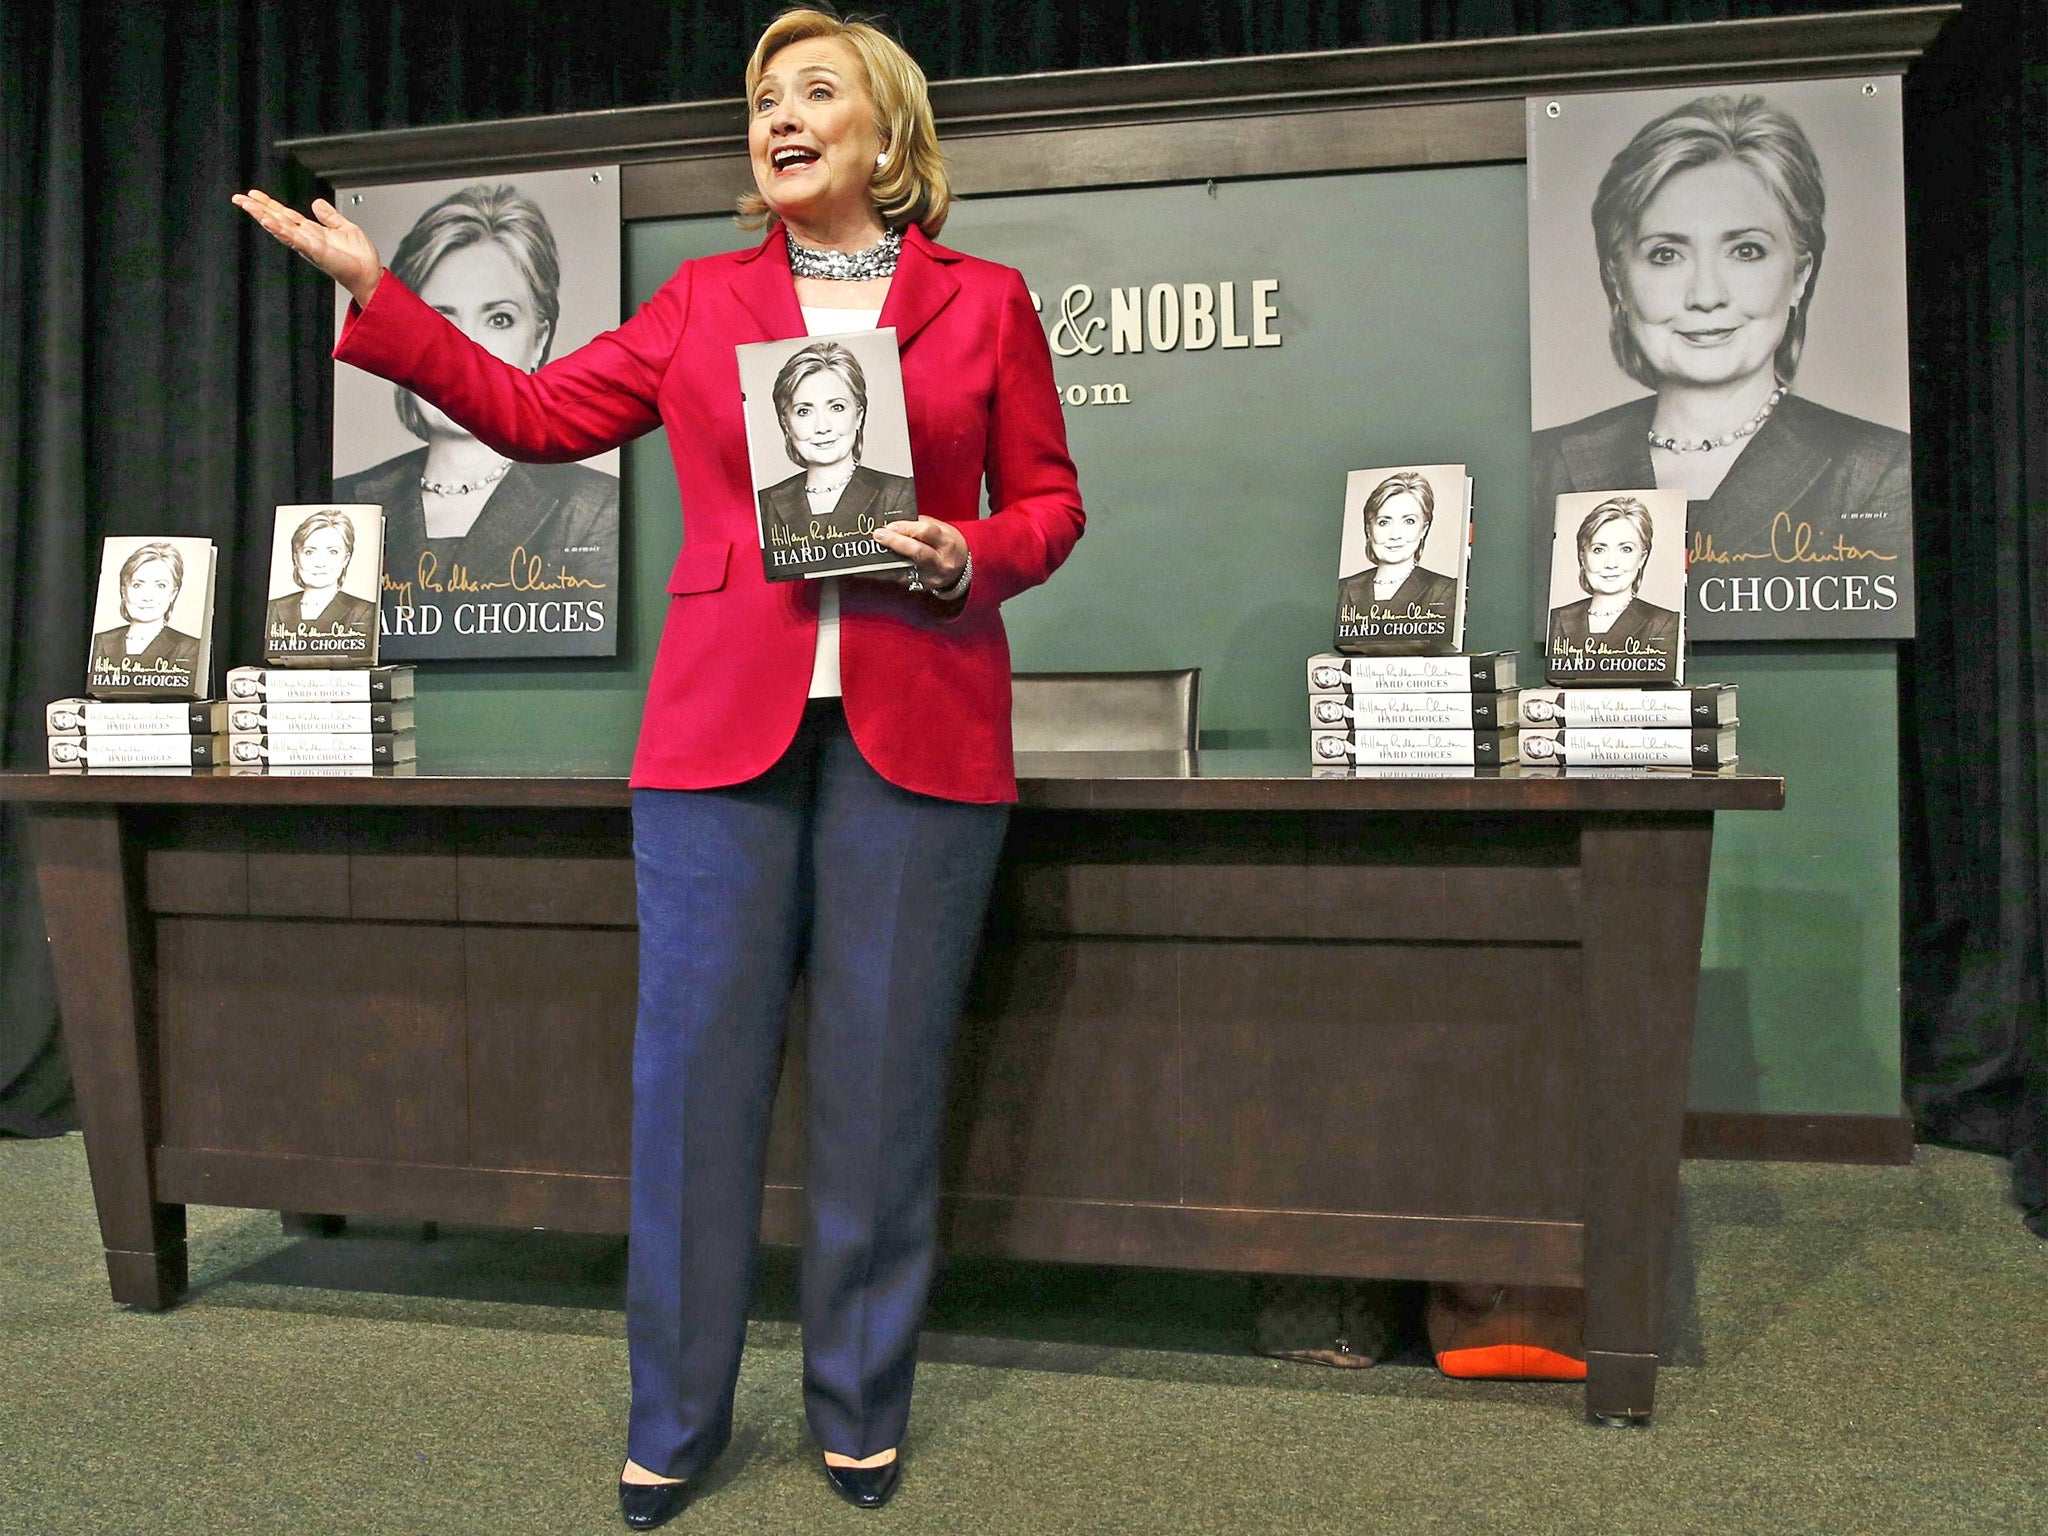 kosovo pays homage to hillary clinton with a clothing shop the